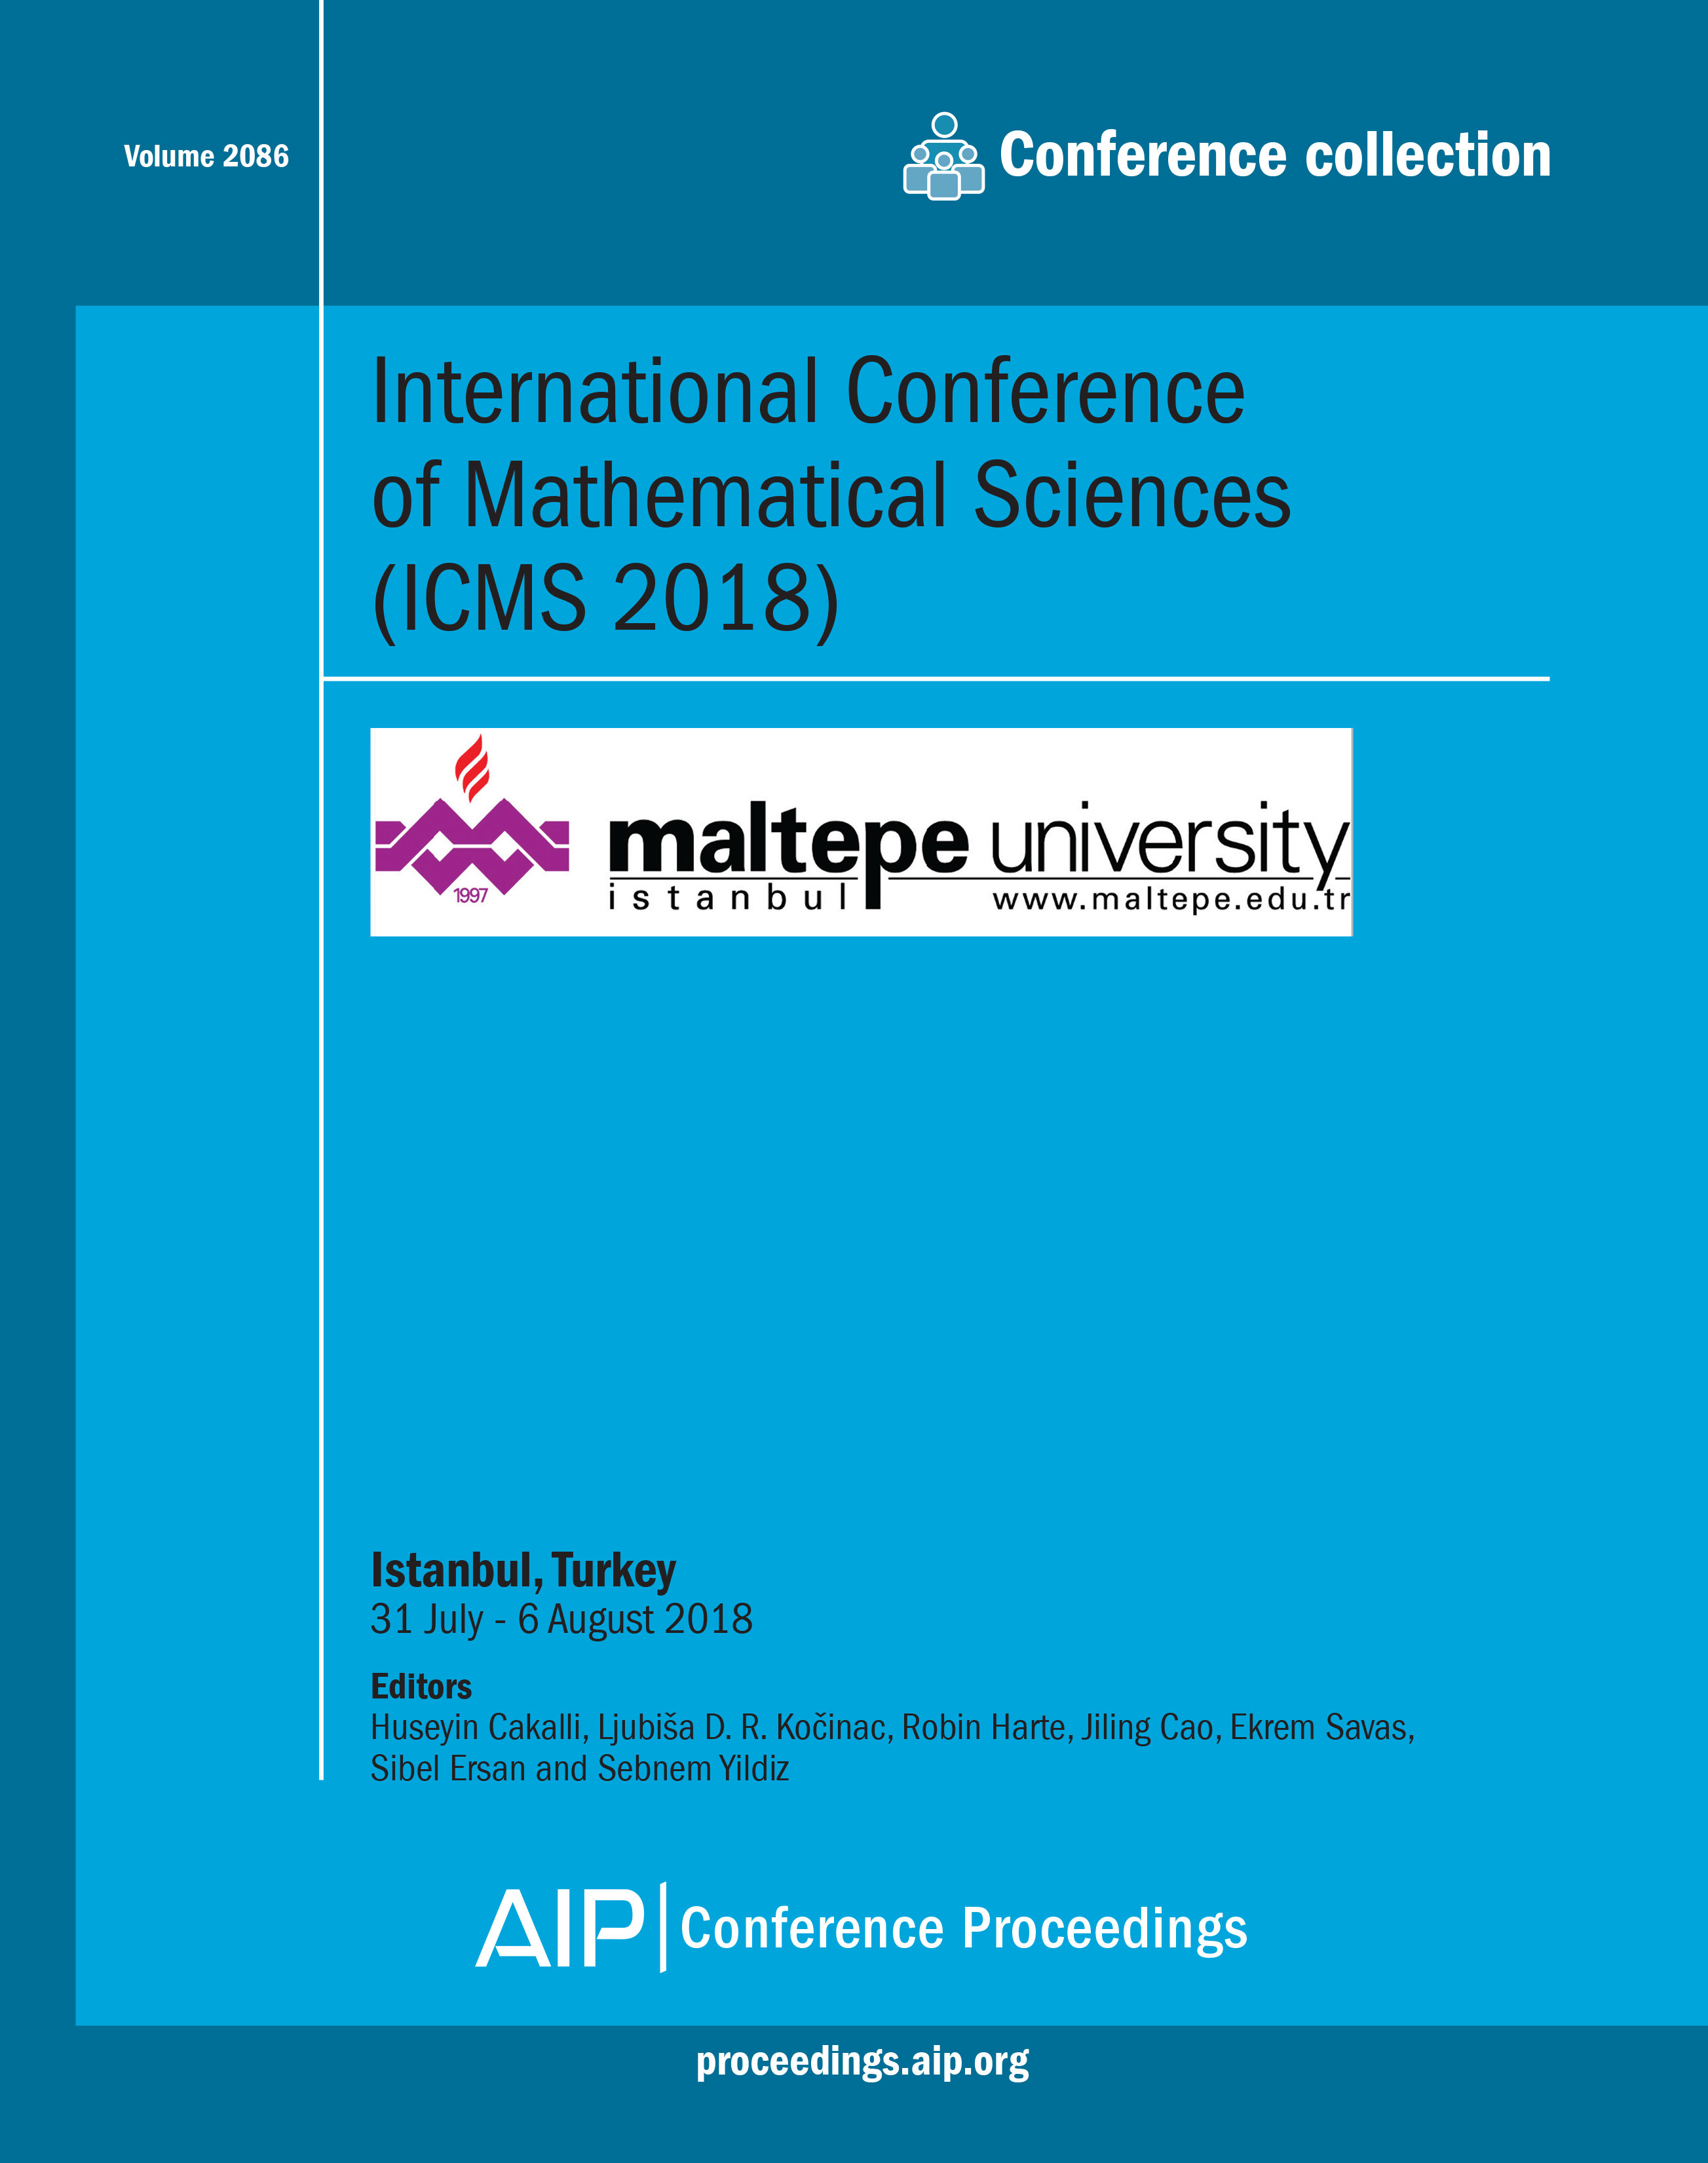 Preface: International Conference of Mathematical Sciences